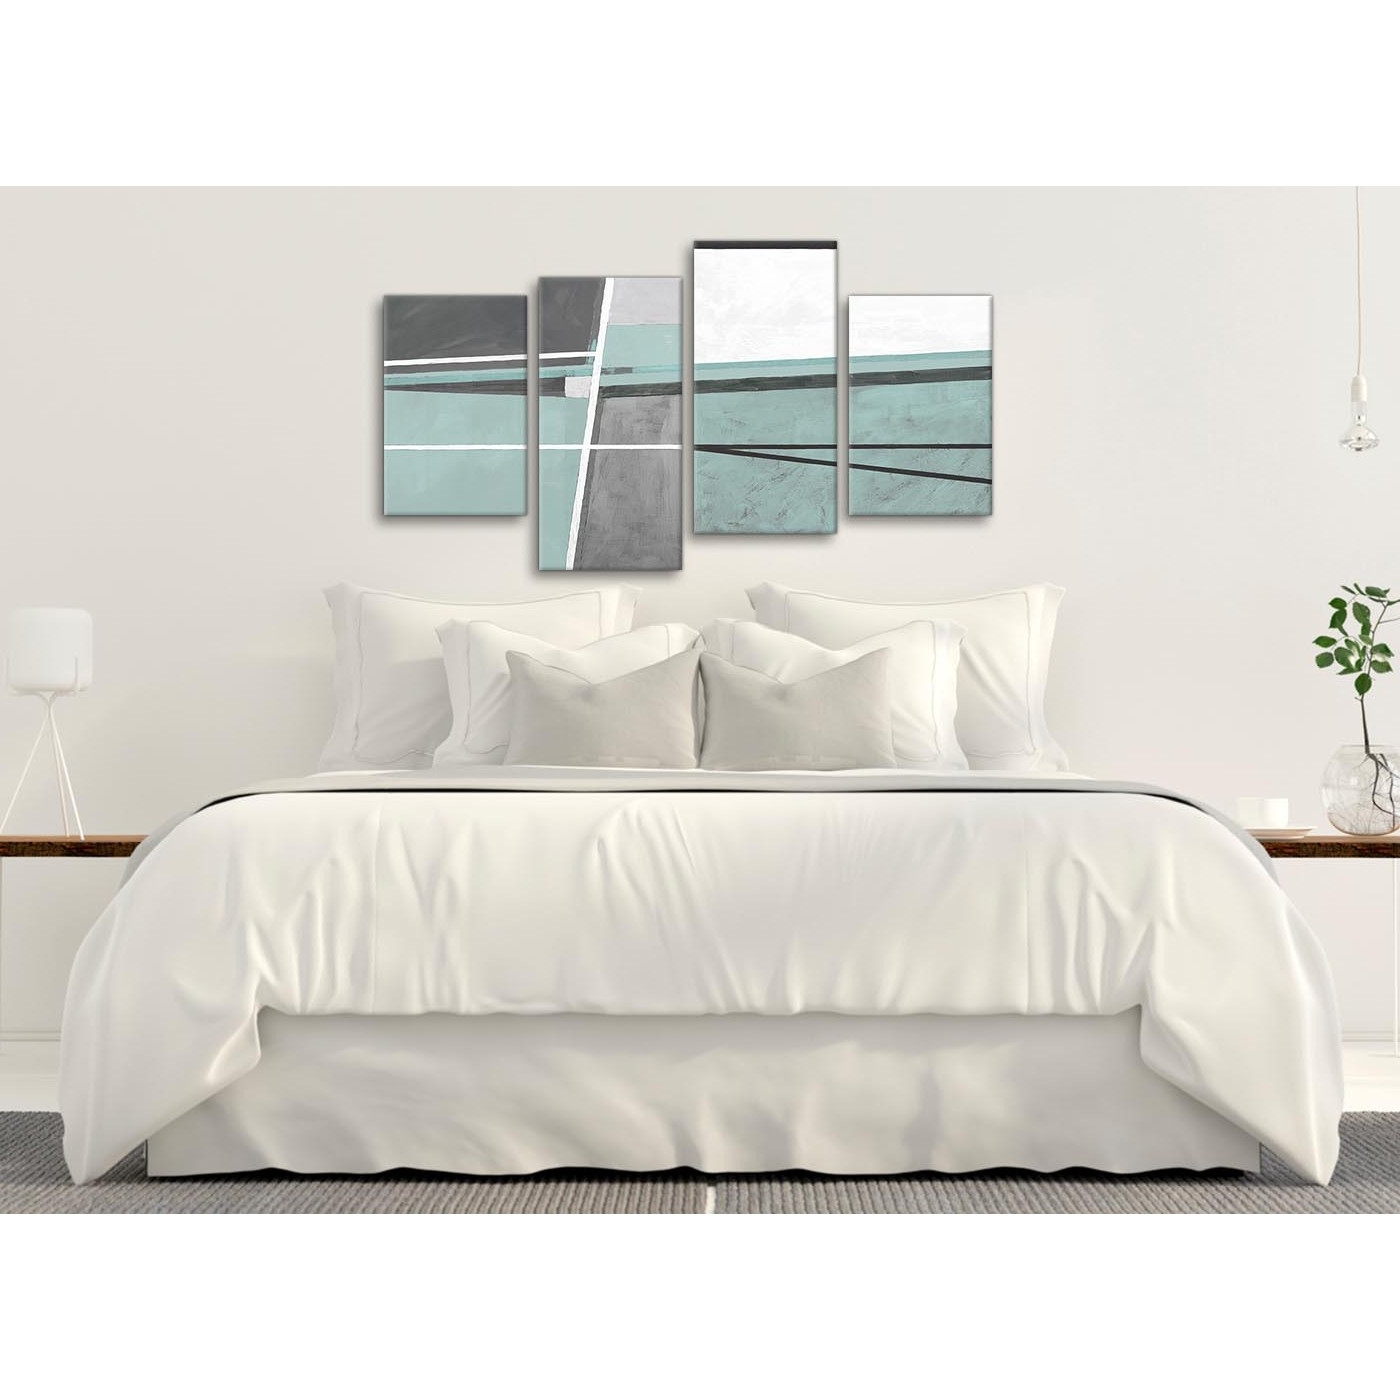 Favorite Large Duck Egg Blue Grey Painting Abstract Bedroom Canvas Pictures With Regard To Duck Egg Canvas Wall Art (View 5 of 15)